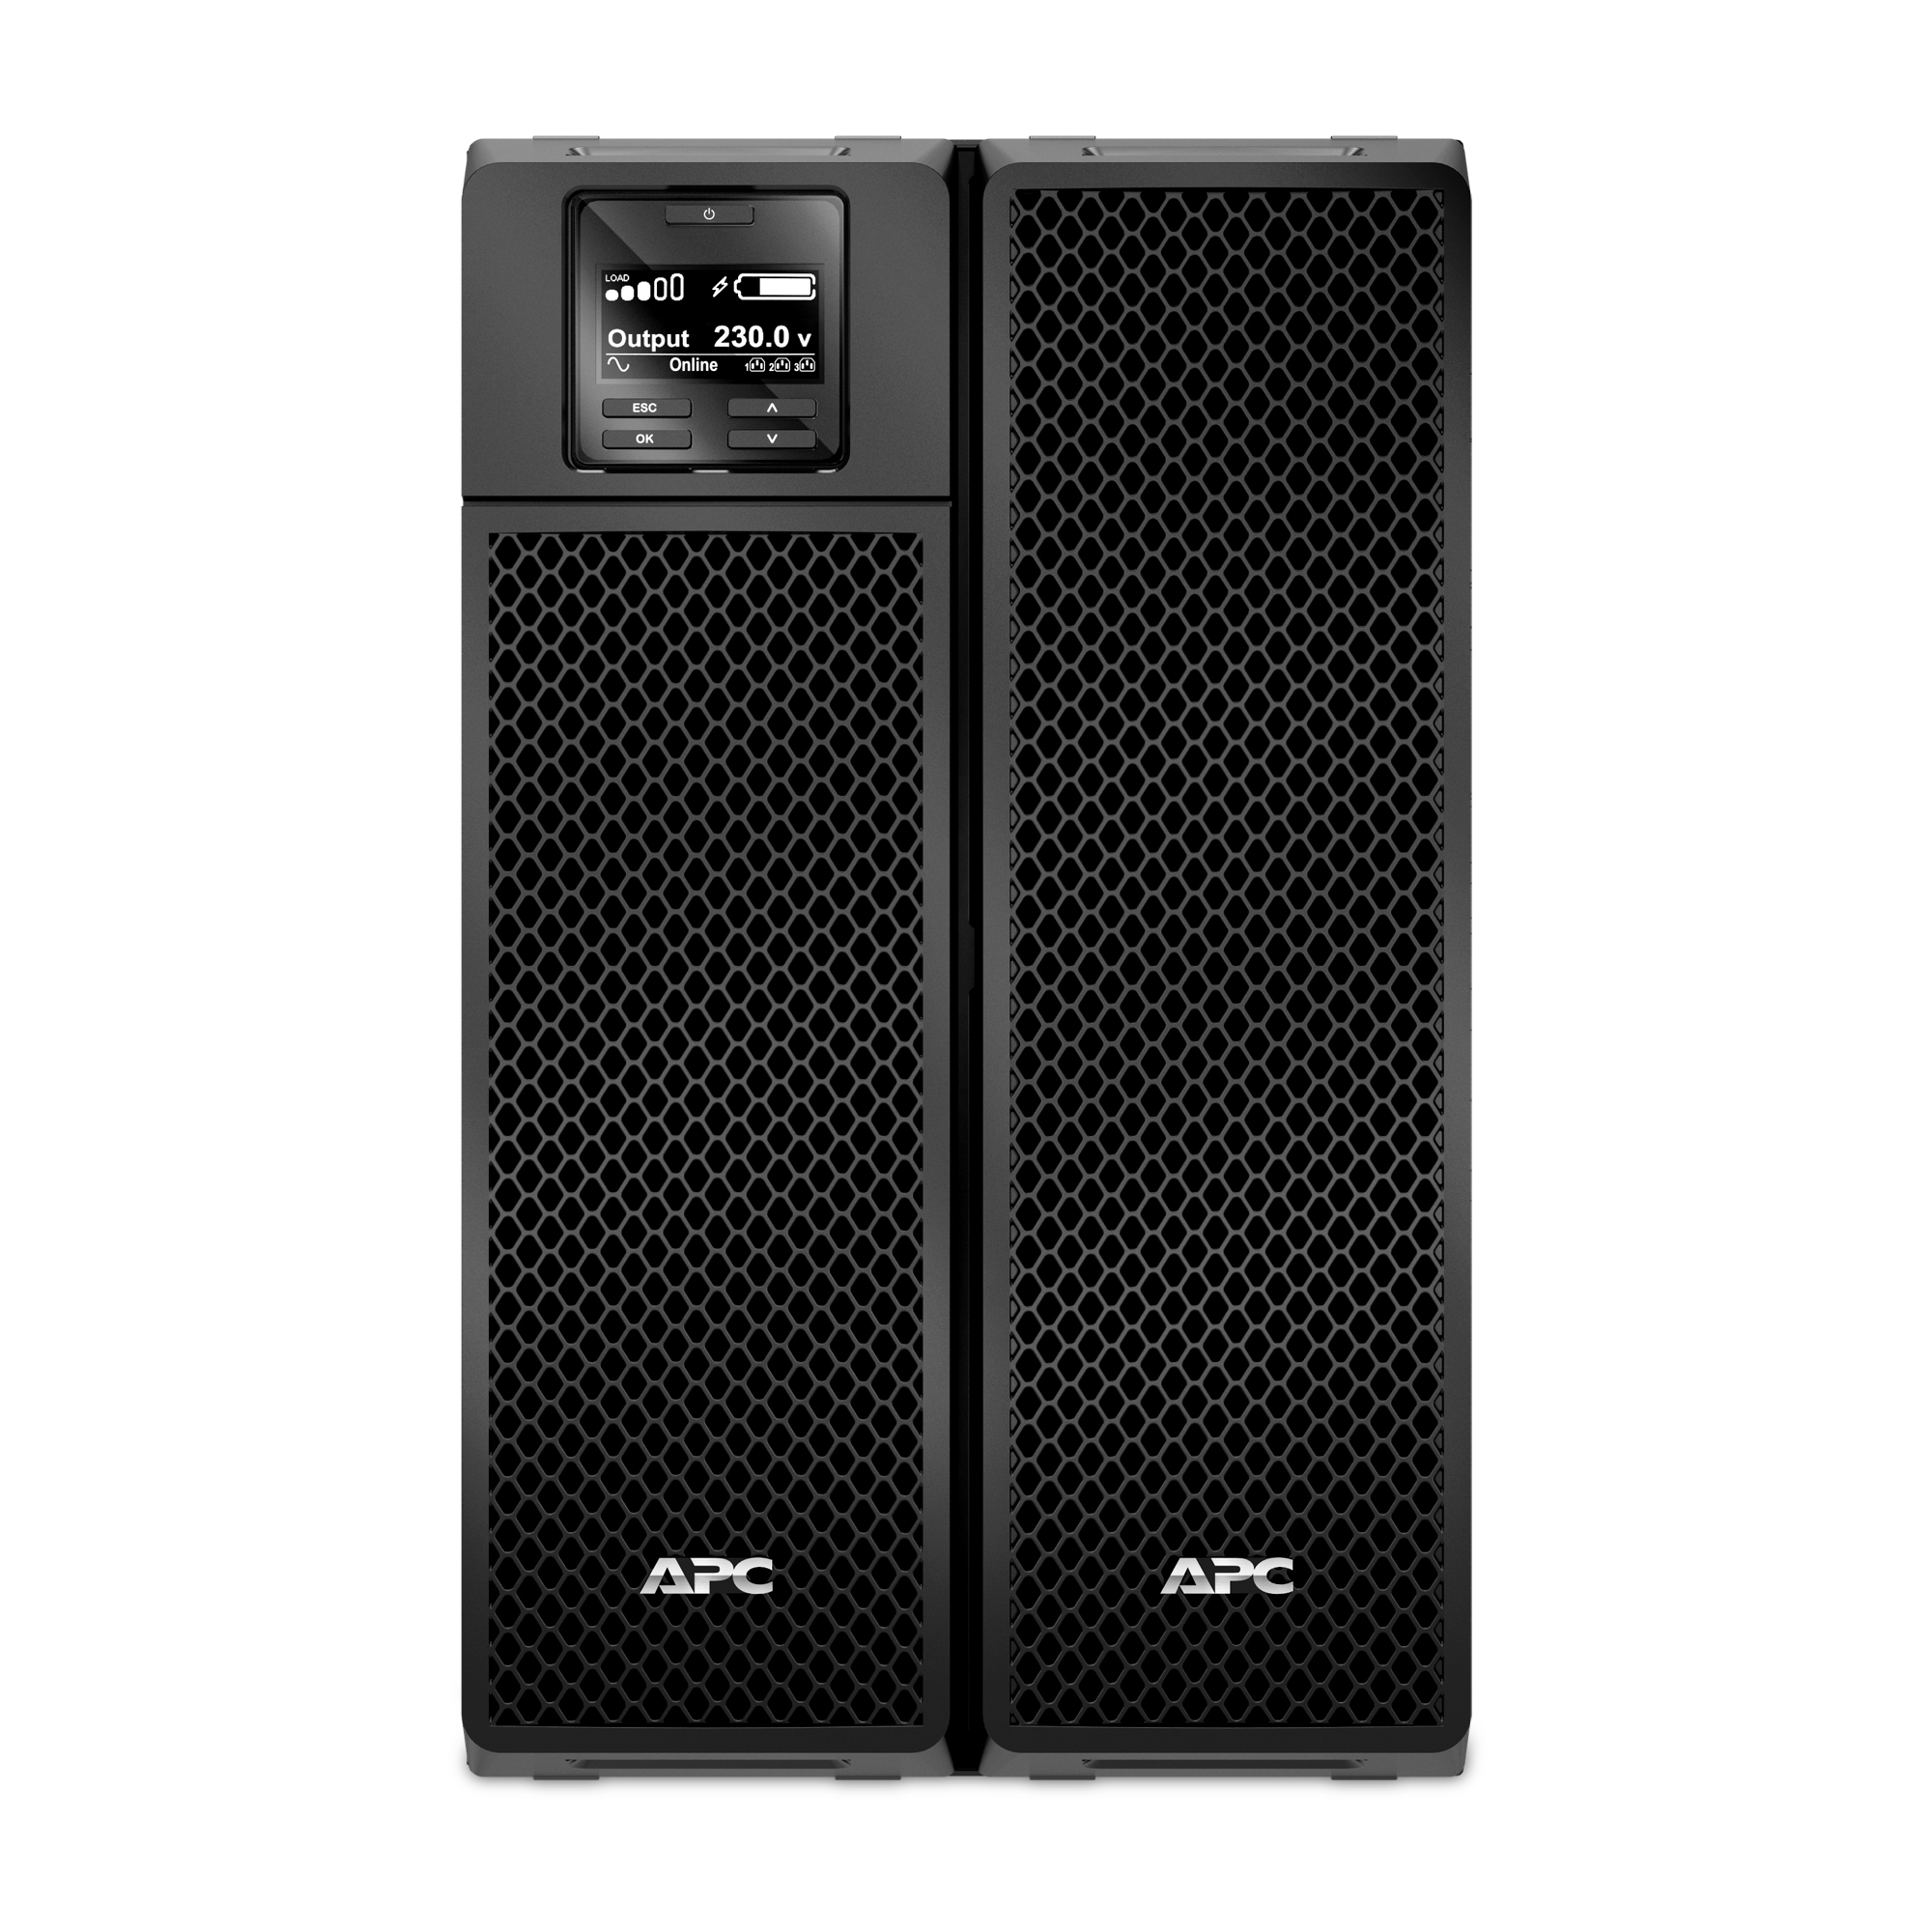 No-break inteligente SRT da APC, 8000 VA e 230 V